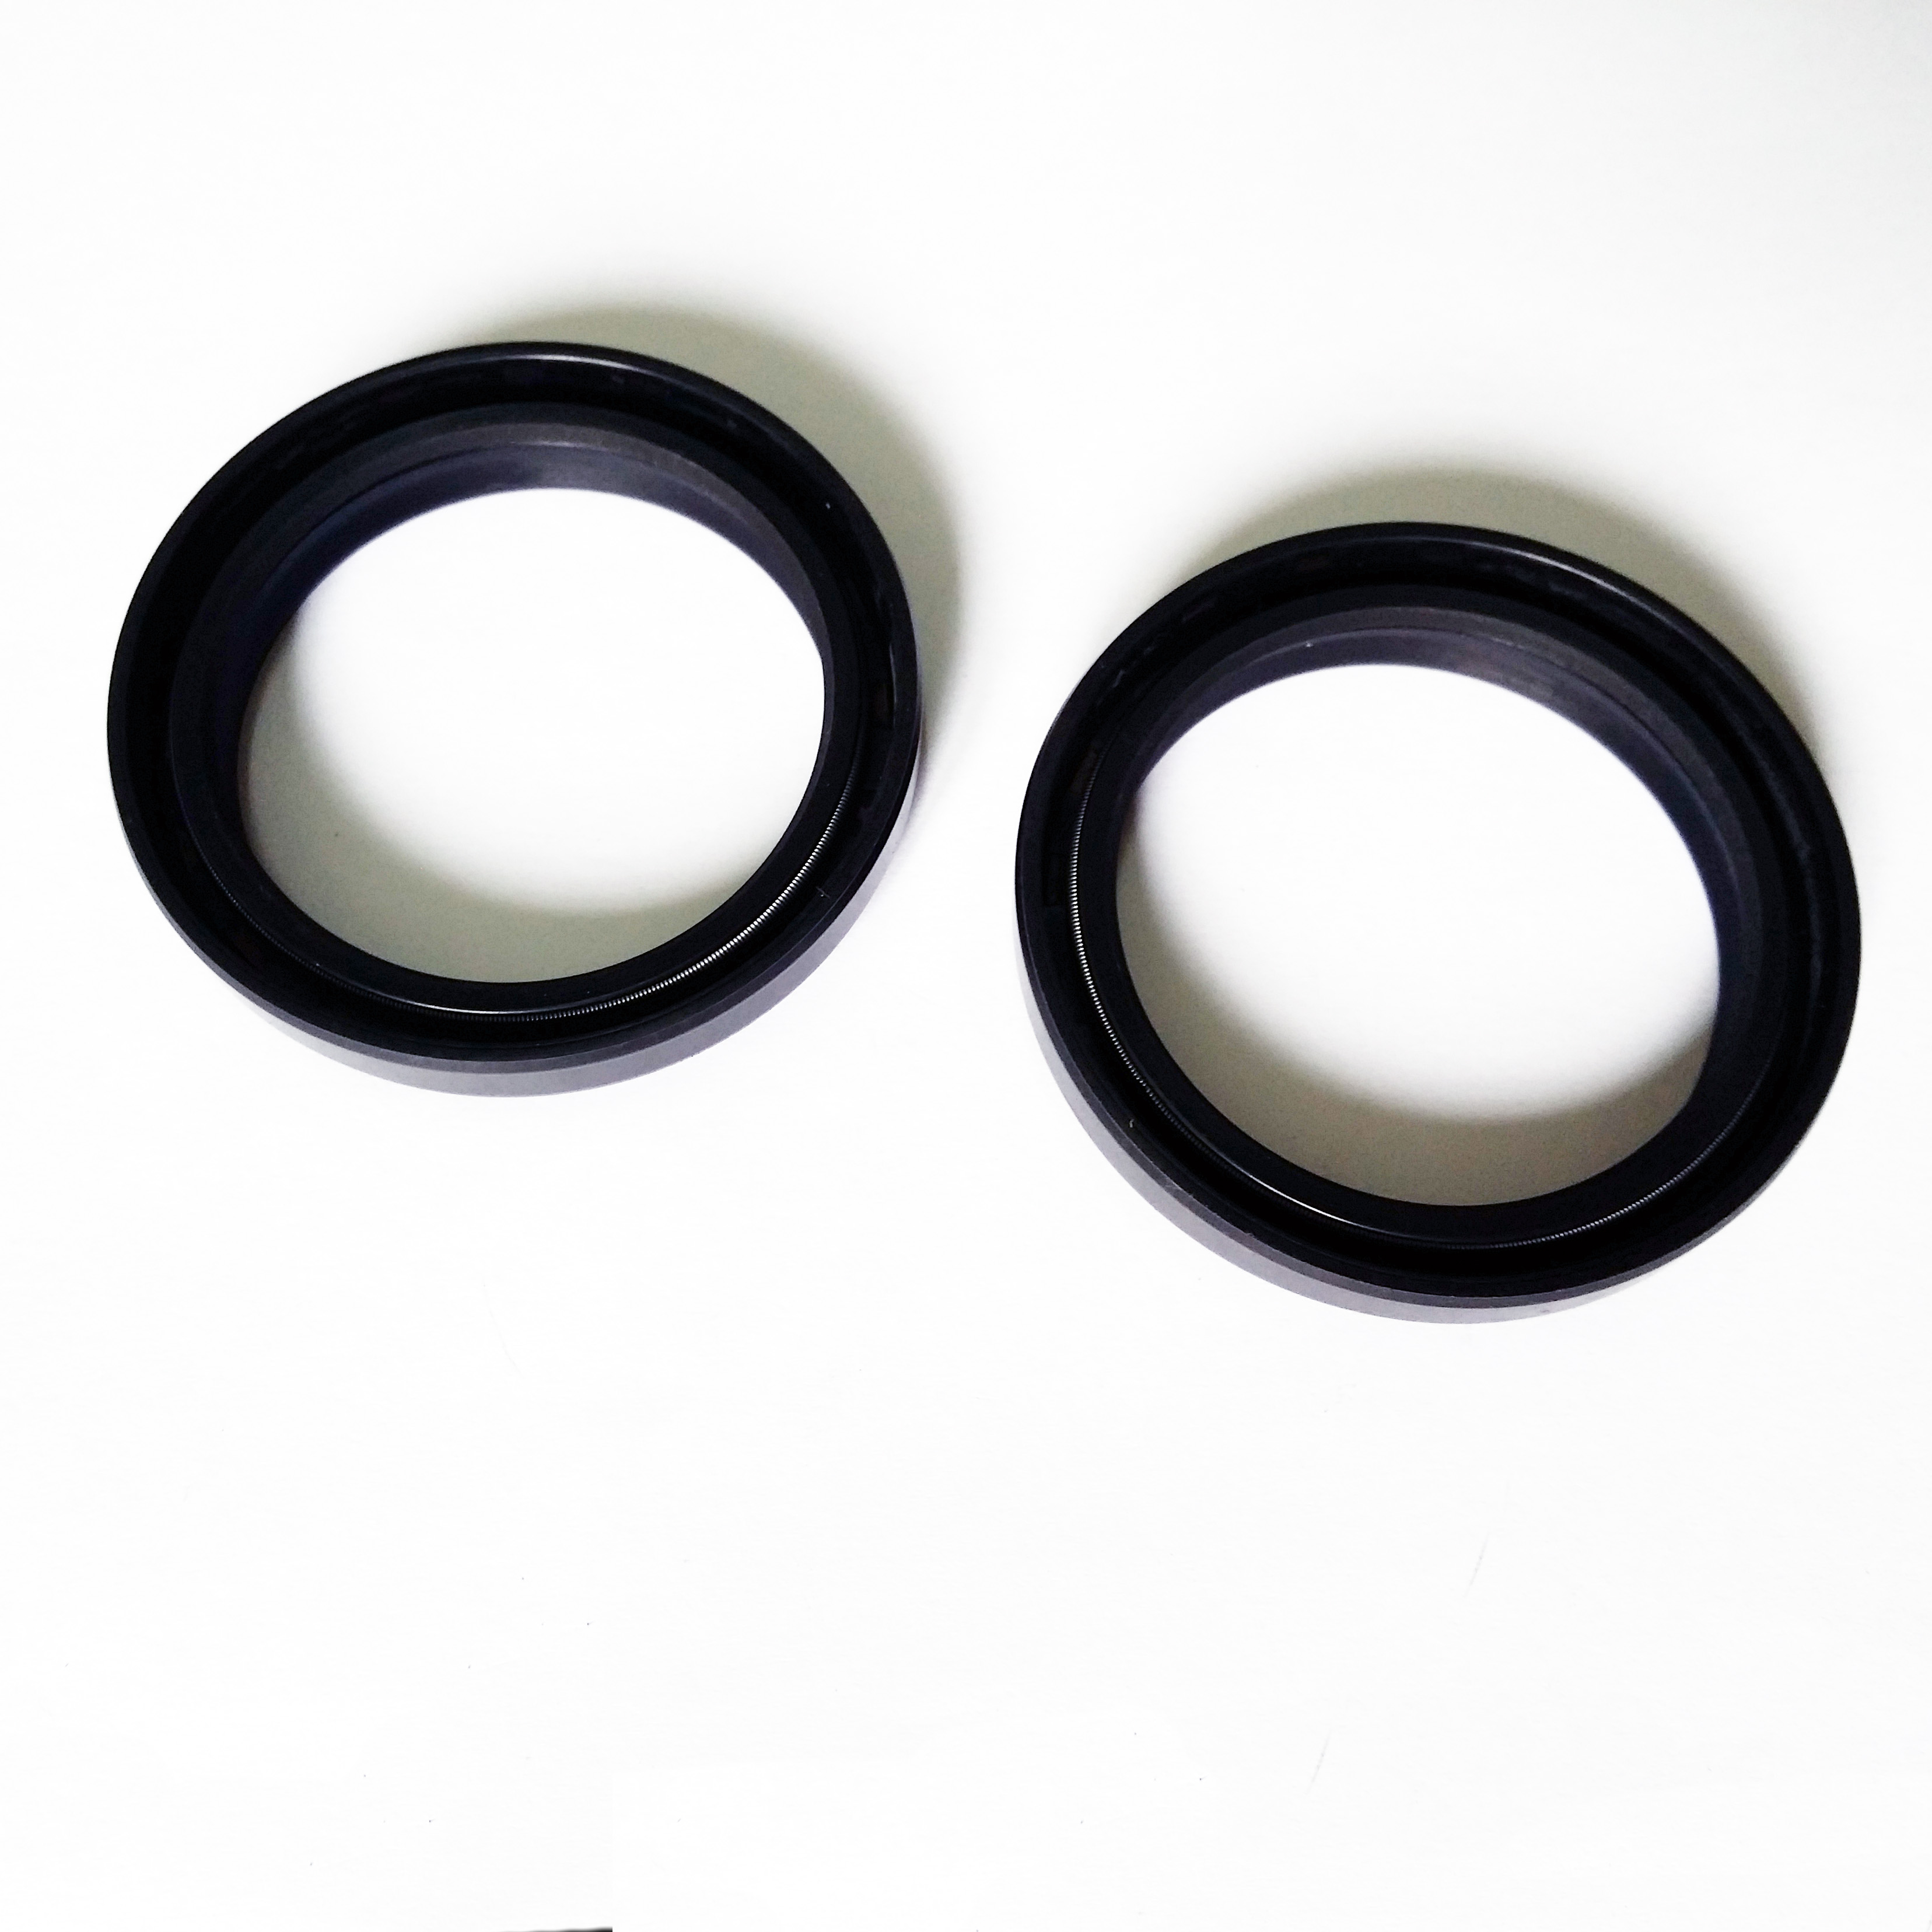 K-Tech Yamaha YZF-R6 1998-2004 NOK Front Fork Oil Seals 43x55x9.5/10mm